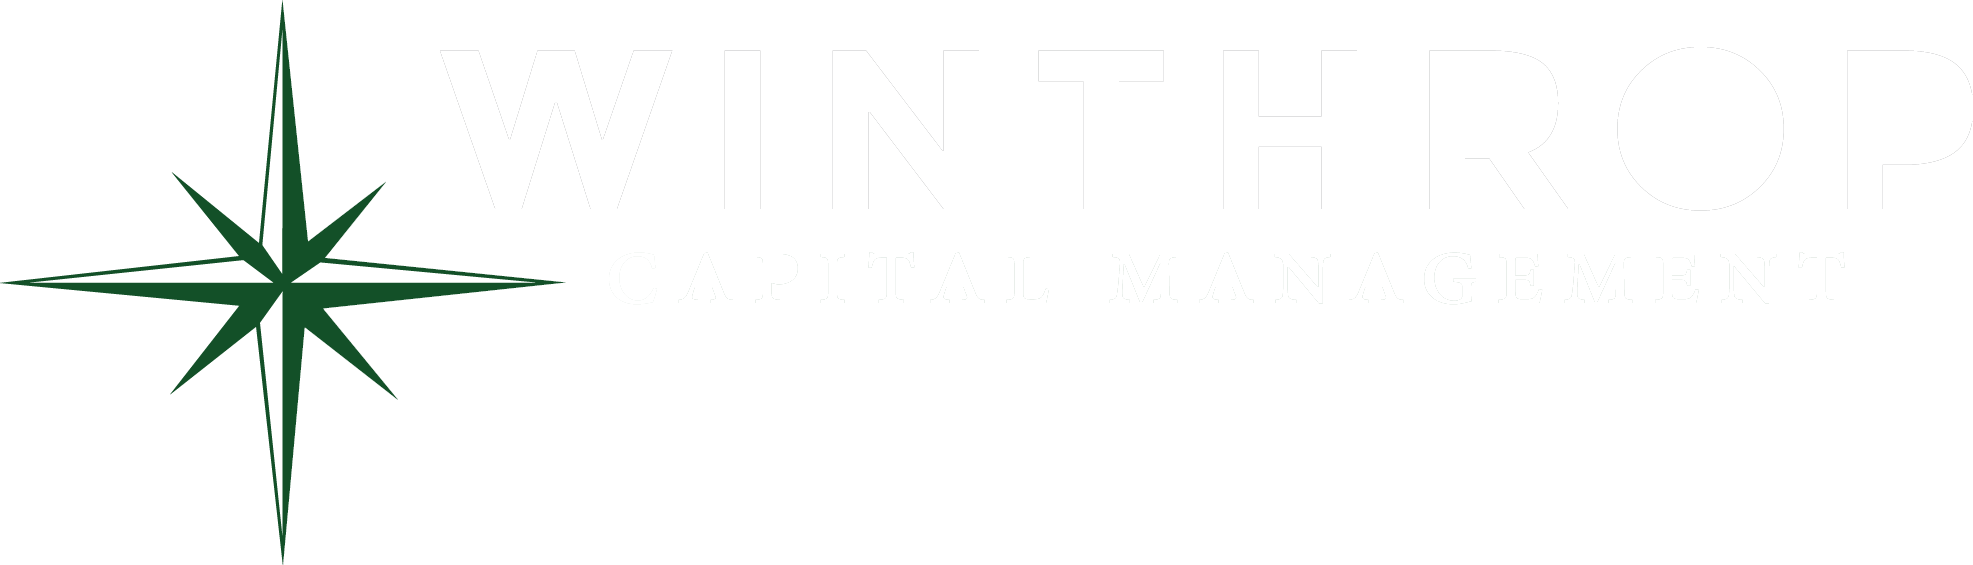 Winthrop Capital Management